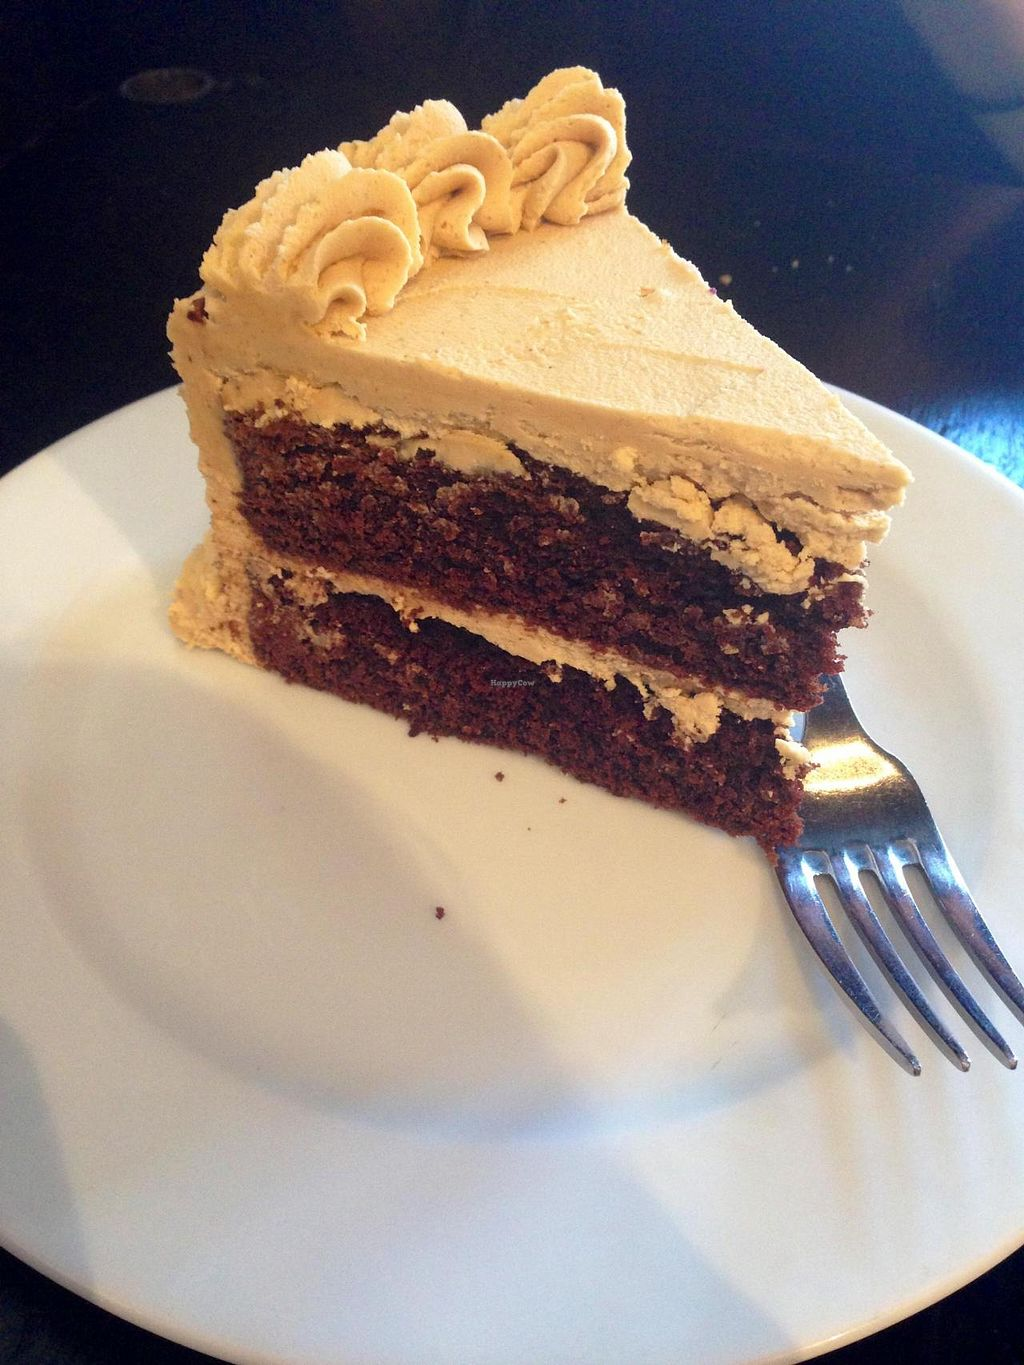 "Photo of Timeless Coffee Roasters and Bakery  by <a href=""/members/profile/jamiemichelle_xvx"">jamiemichelle_xvx</a> <br/>Vegan Peanut Butter and Chocolate Cake <br/> June 5, 2014  - <a href='/contact/abuse/image/36793/71403'>Report</a>"